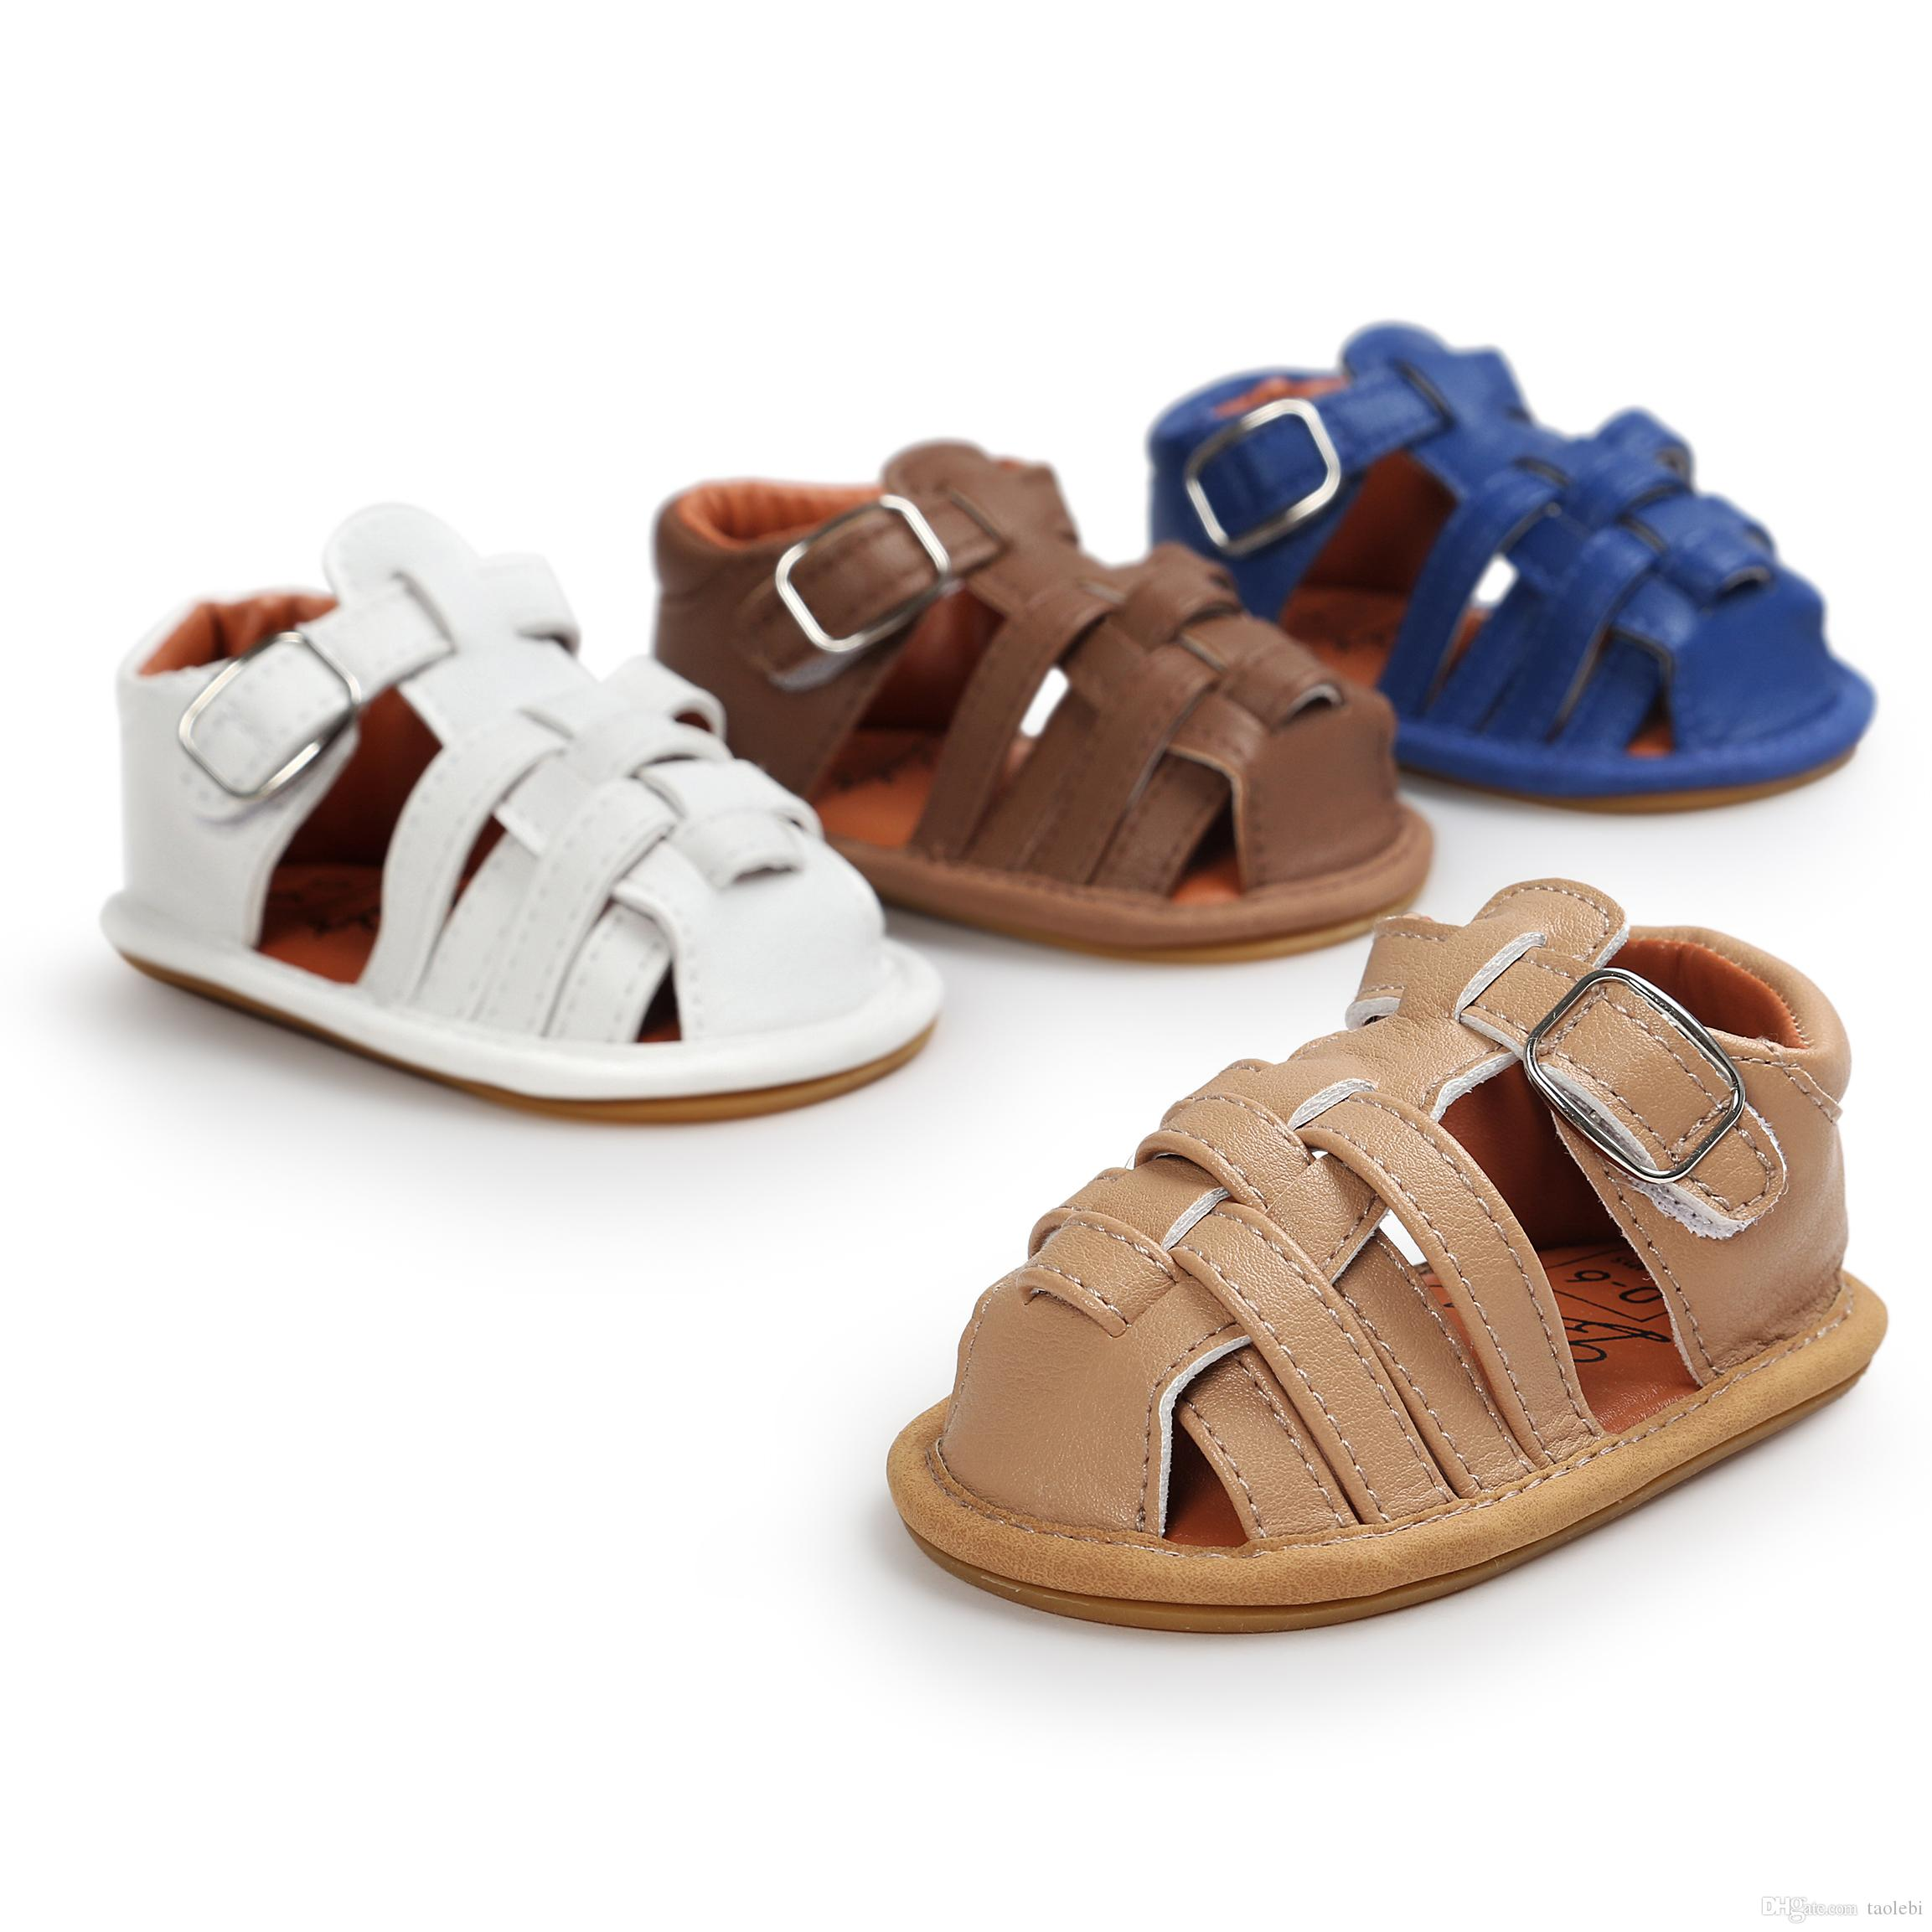 Can Choose SizesHot Sale Baby Boy Sandals Summer Baby Boy Fist